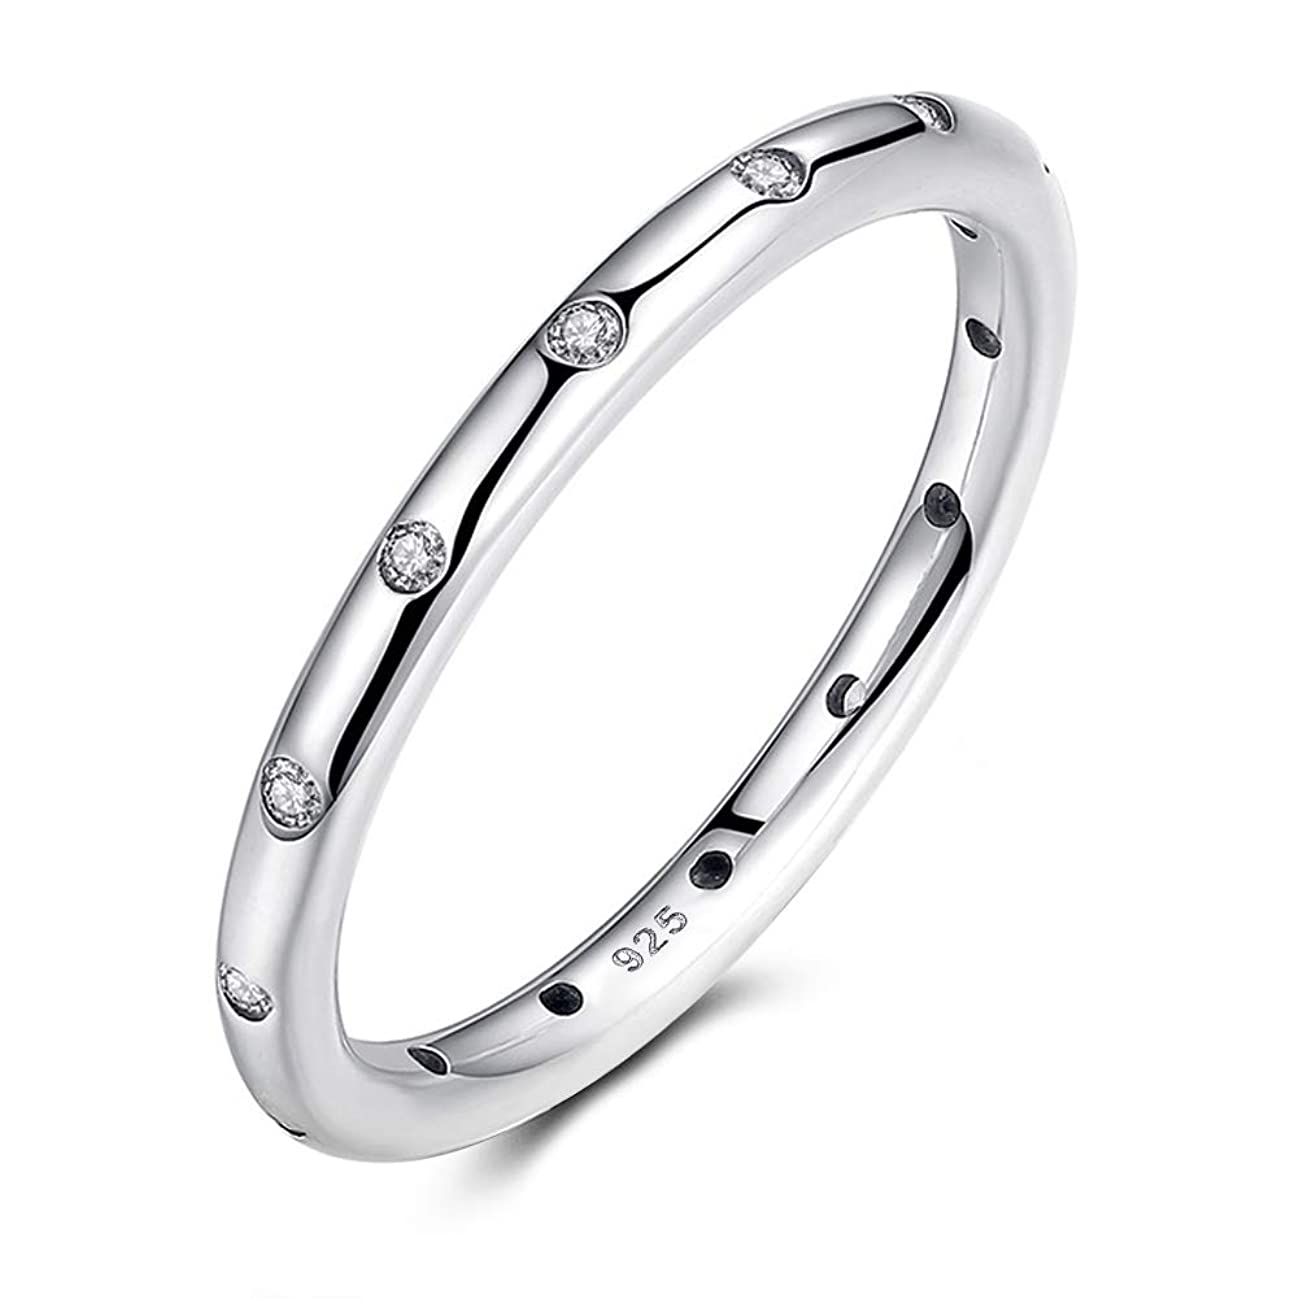 AllenCOCO 2.5mm 925 Sterling Silver CZ Simulated Diamond Stackable Ring Eternity Bands for Women